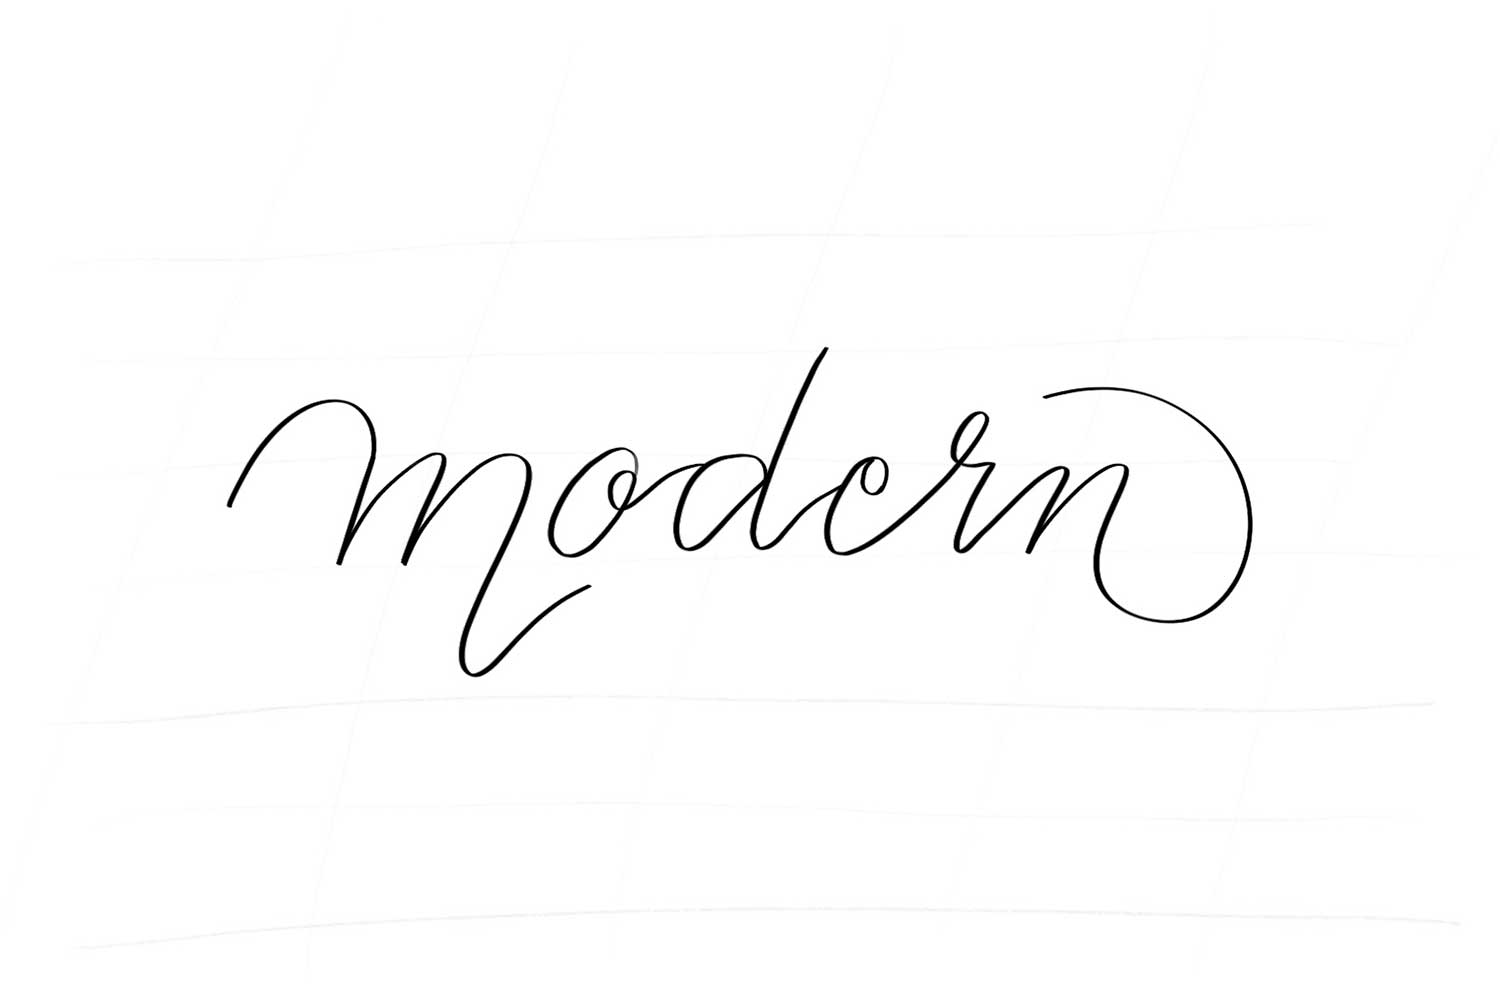 Lettering Styles 5 Different Designs To Try